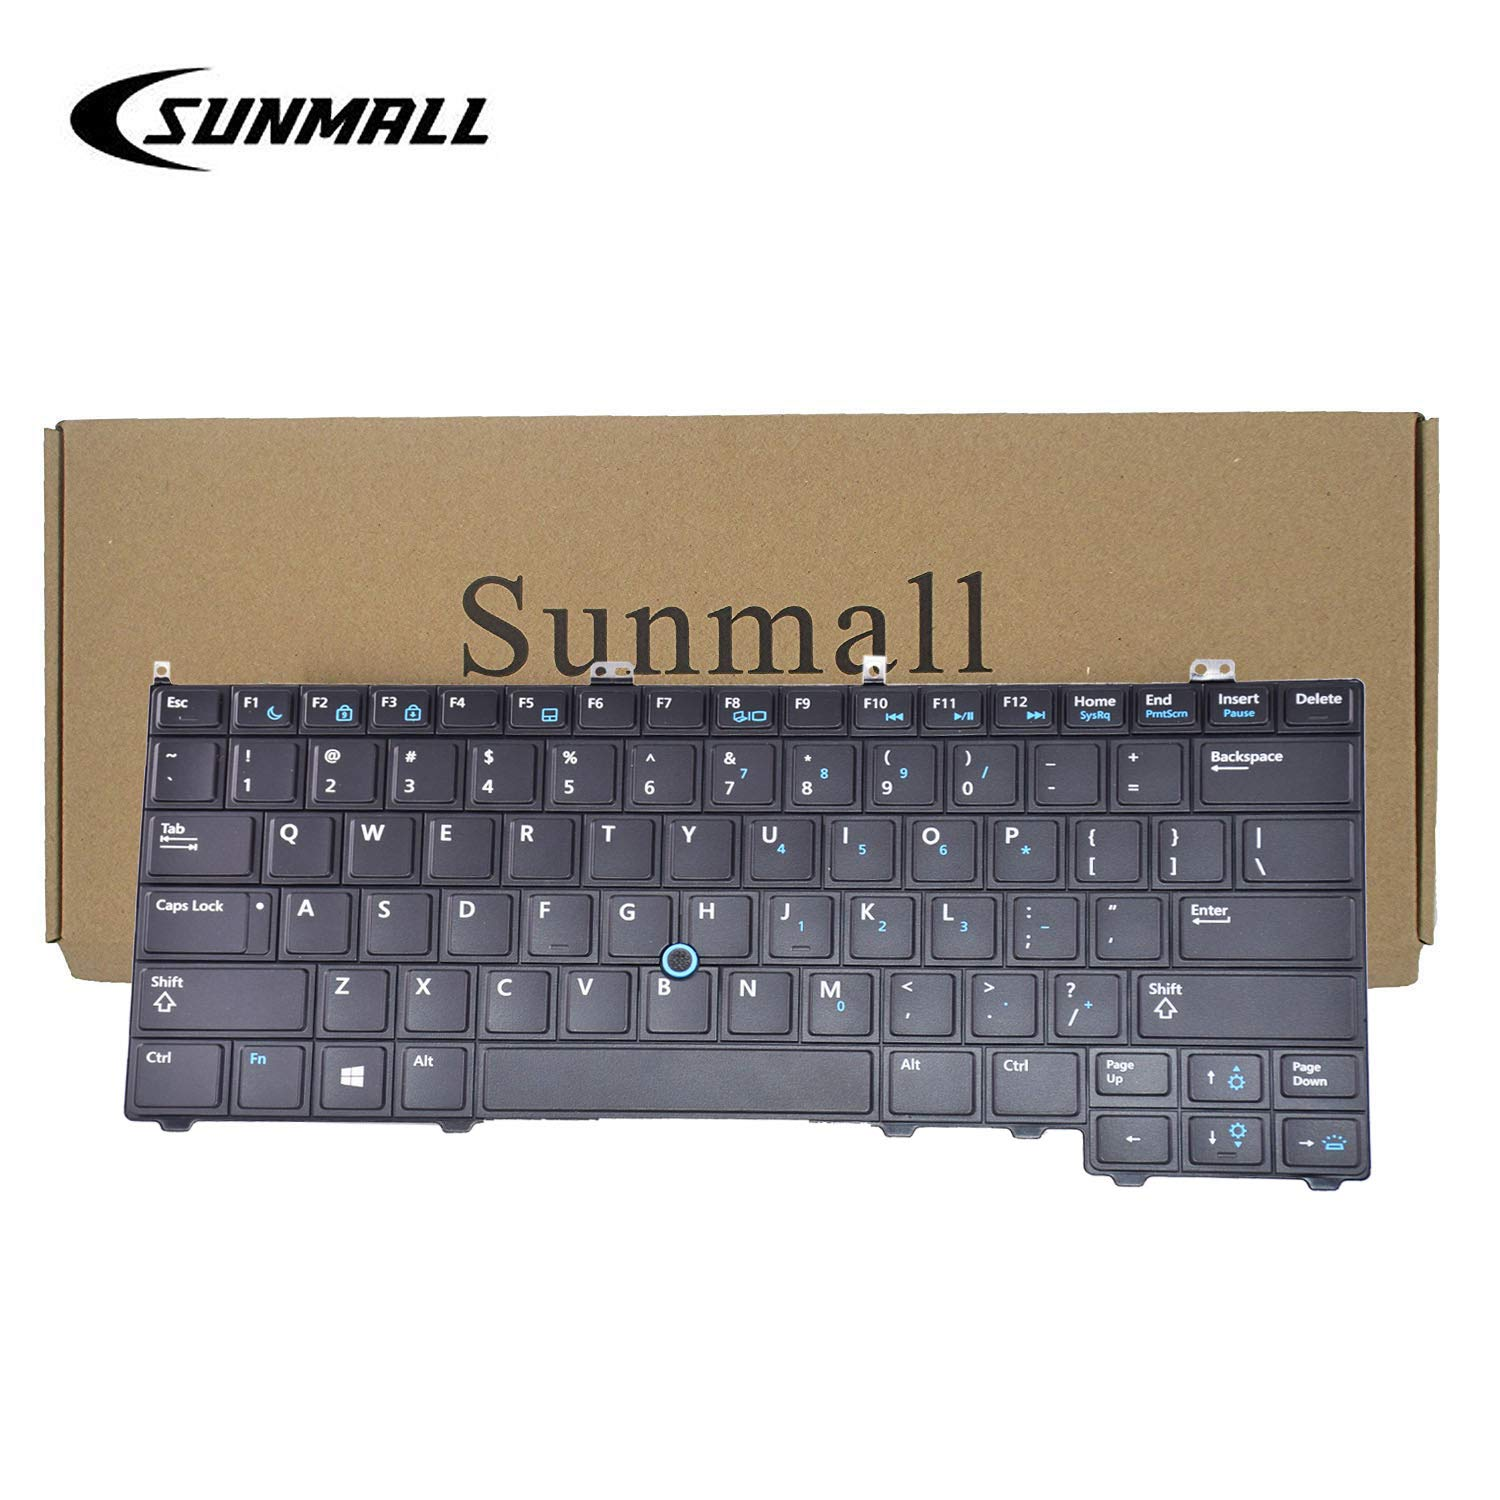 SUNMALL Backlit Keyboard Replacement with Pointer Compatible with Dell Latitude 14 7000 E7440 E7240 E7420 Series Black US Layout(6 Months Warranty)